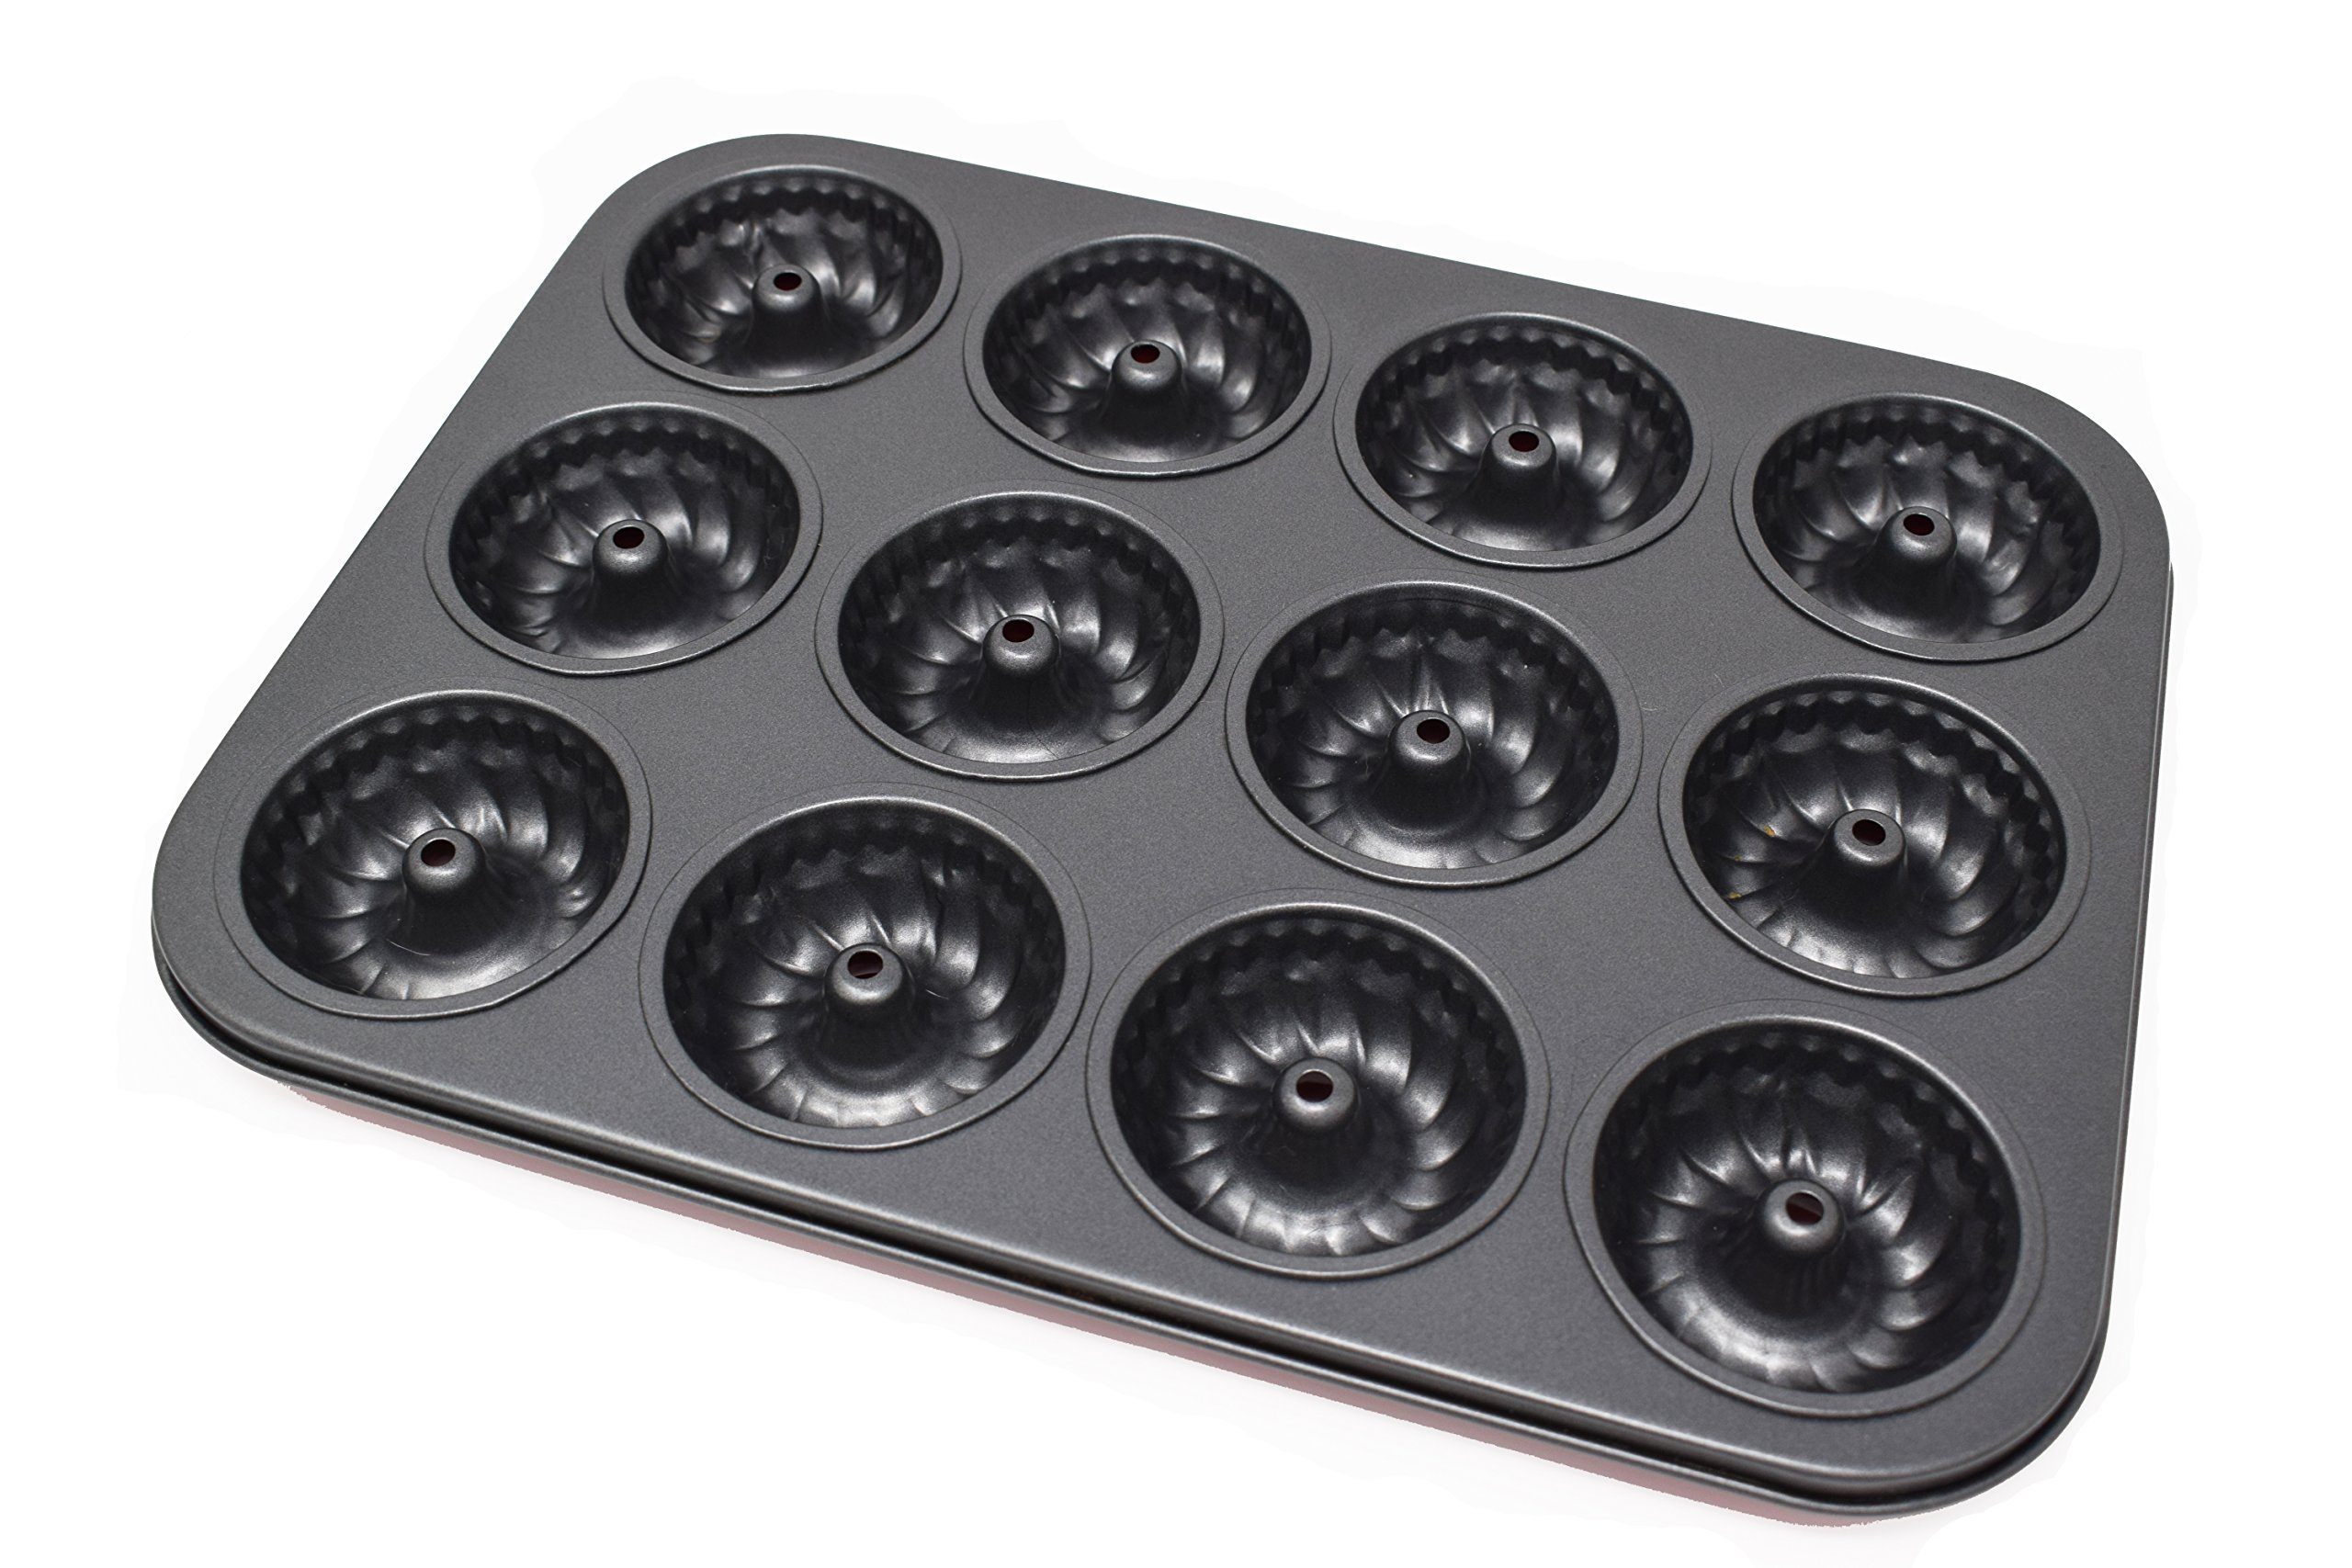 PreOkupied 2-Pack of 6-Cavity Fluted Mini Bite-Size Bundt Cake Nonstick Baking Pan, Carbon Steel, Dark Gray 10.6 x 7.5 x 1.6 Inches with 2.8 Inch Cavities, Including a Blue Collapsible Silicone Funnel by PreOkupied